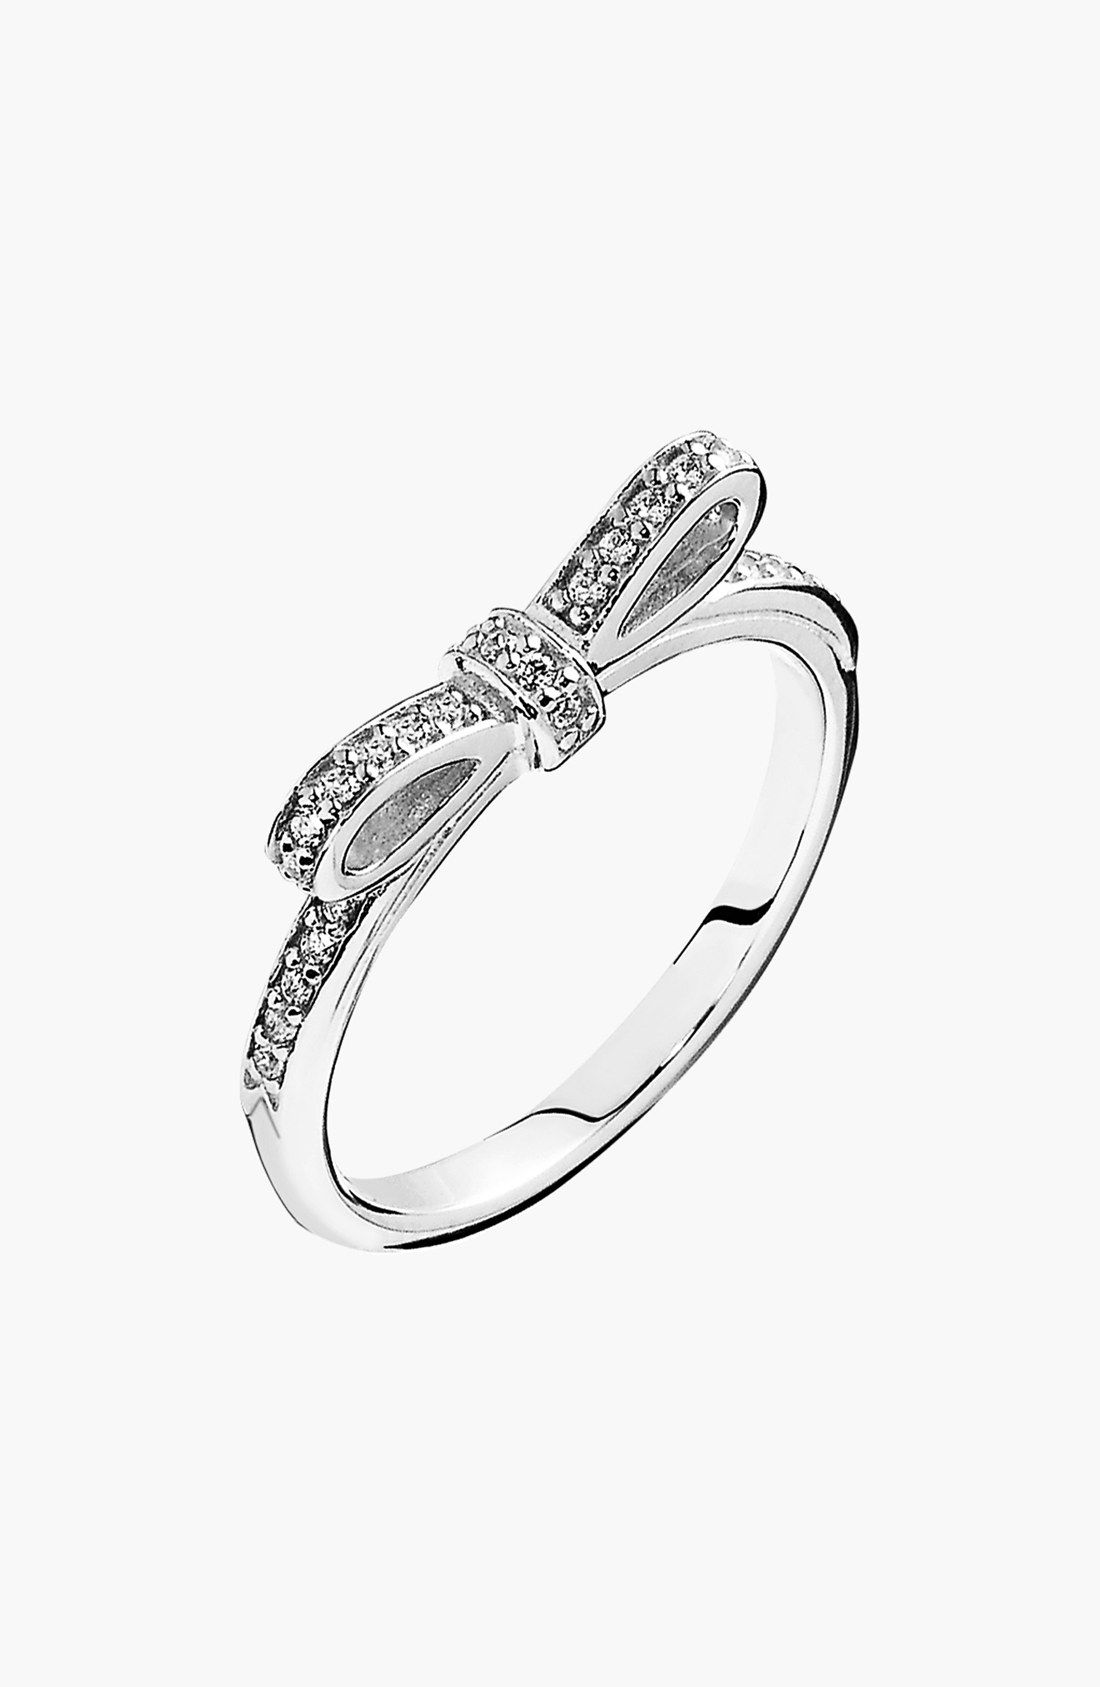 165a49bc3 Dainty and cute, this PANDORA bow ring is simply charming. | Top ...